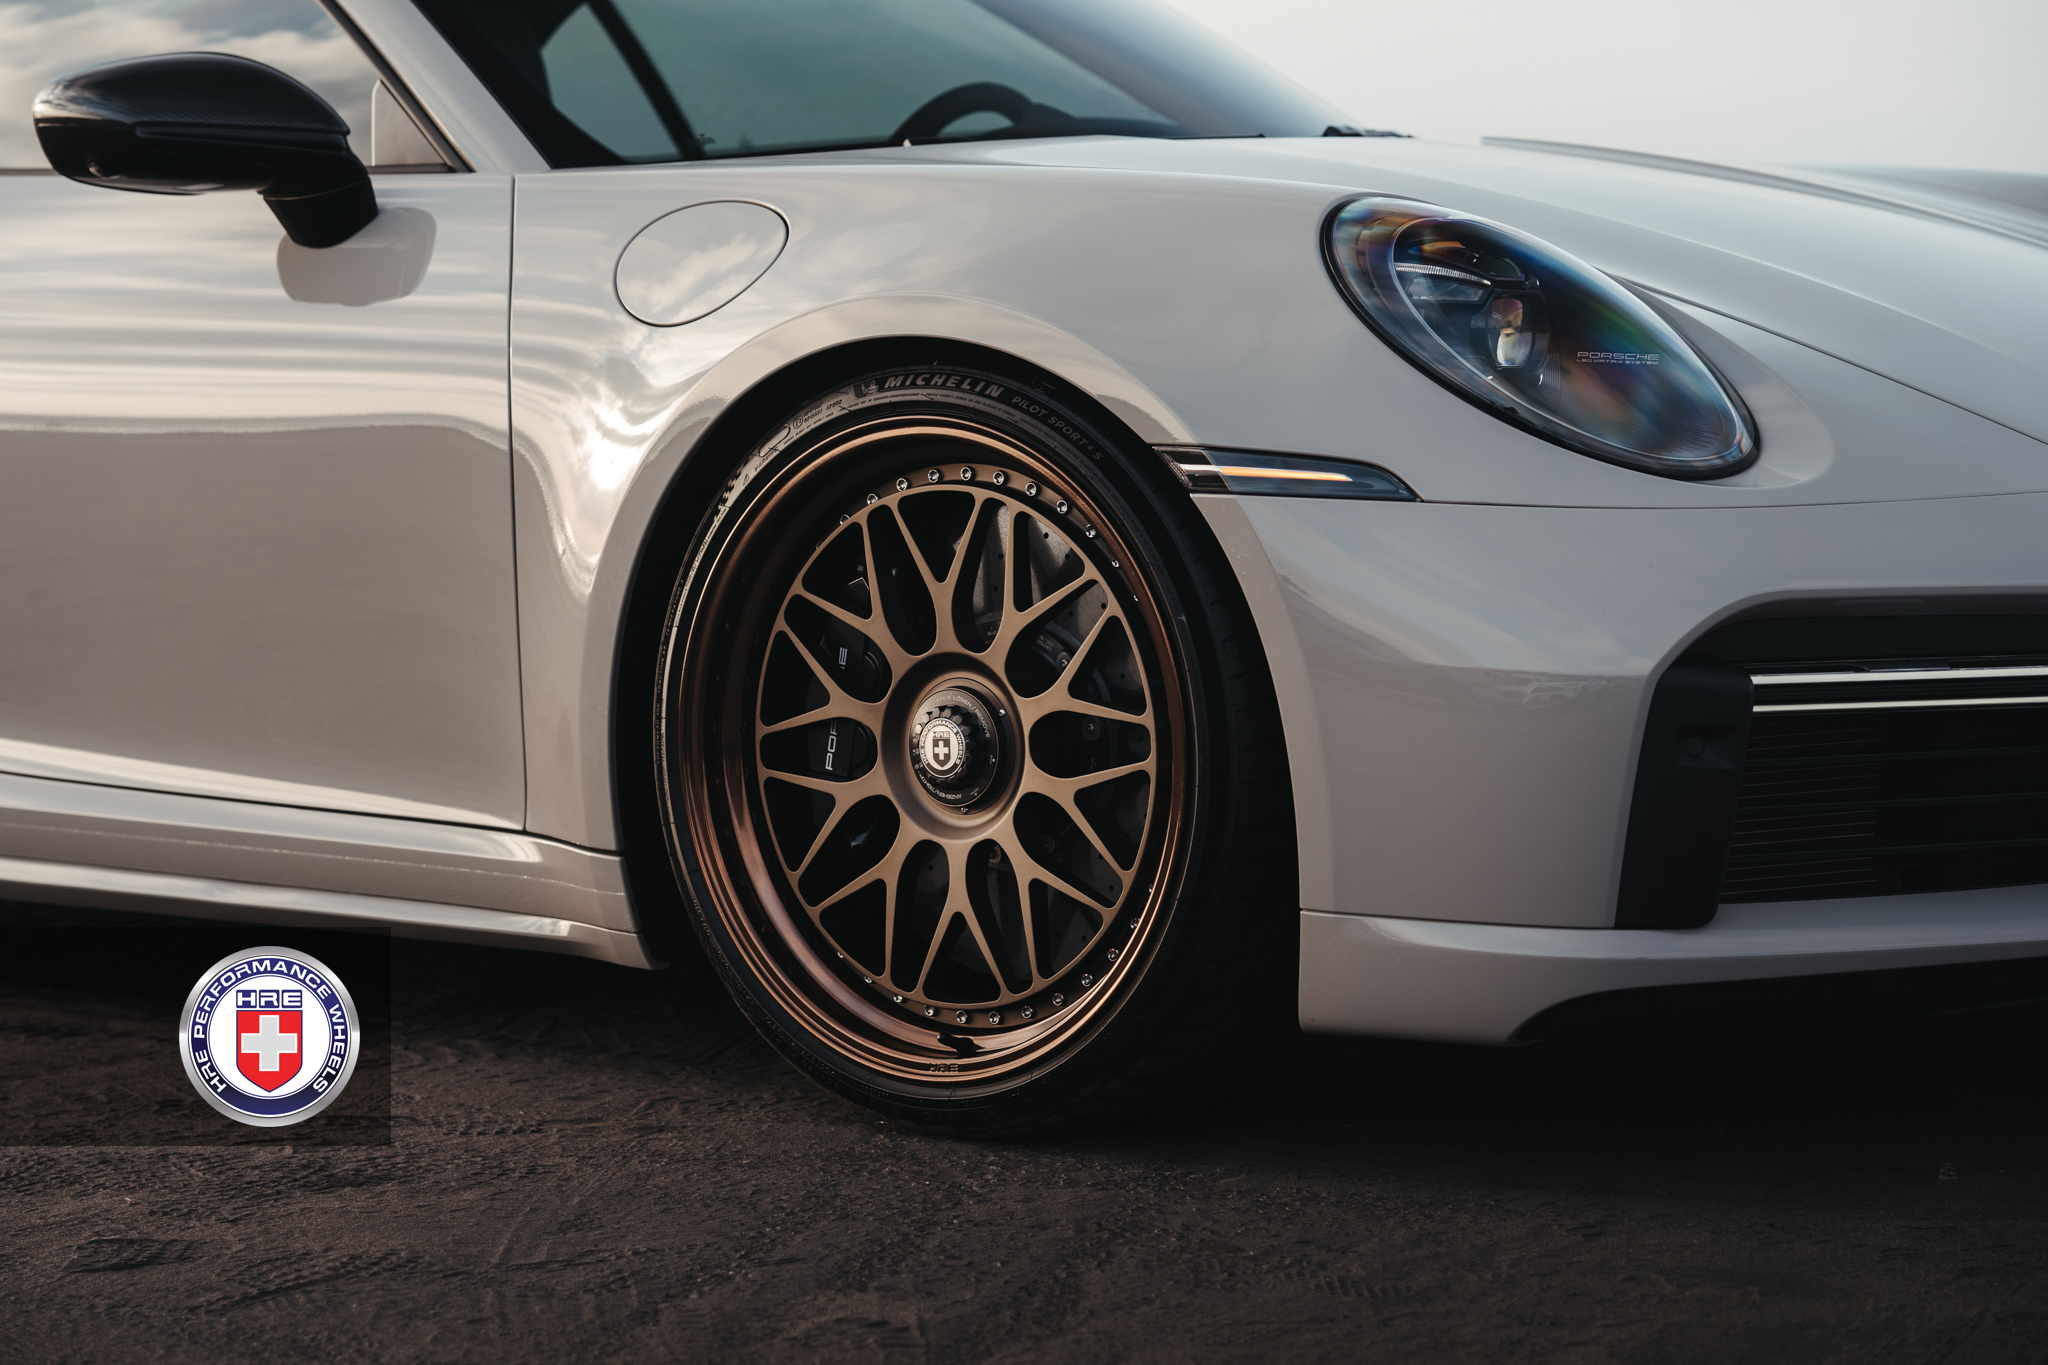 HRE WHEELS - NEW FMR FOR VINTAGE, CLASSIC, AND 540 WHEEL COLLECTIONS